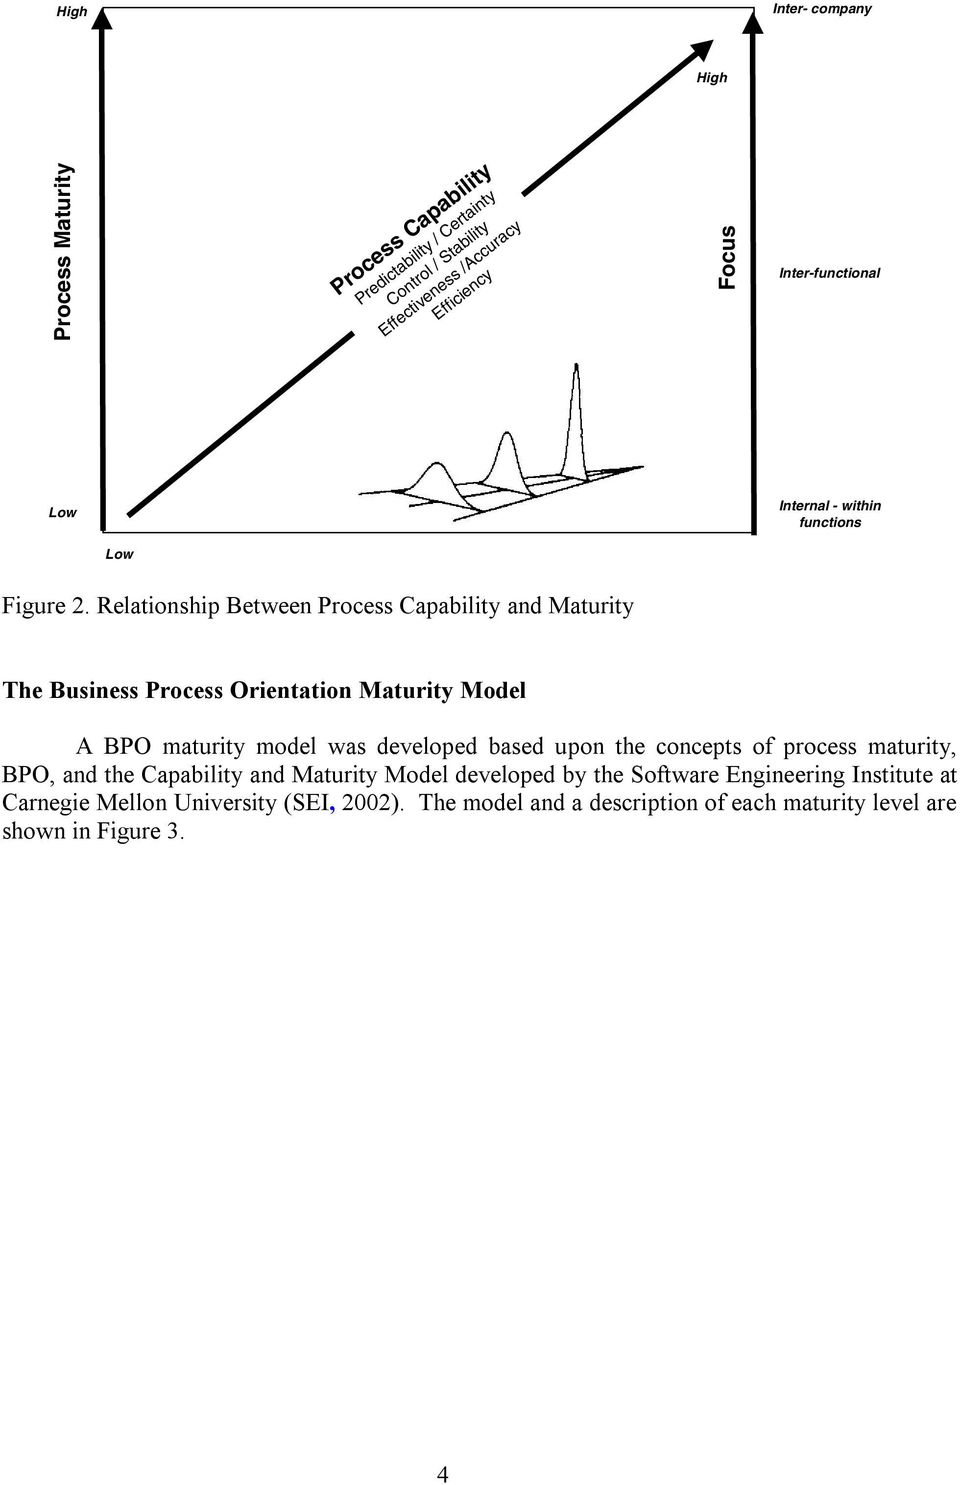 Relationship Between Process Capability and Maturity The Business Process Orientation Maturity Model A BPO maturity model was developed based upon the